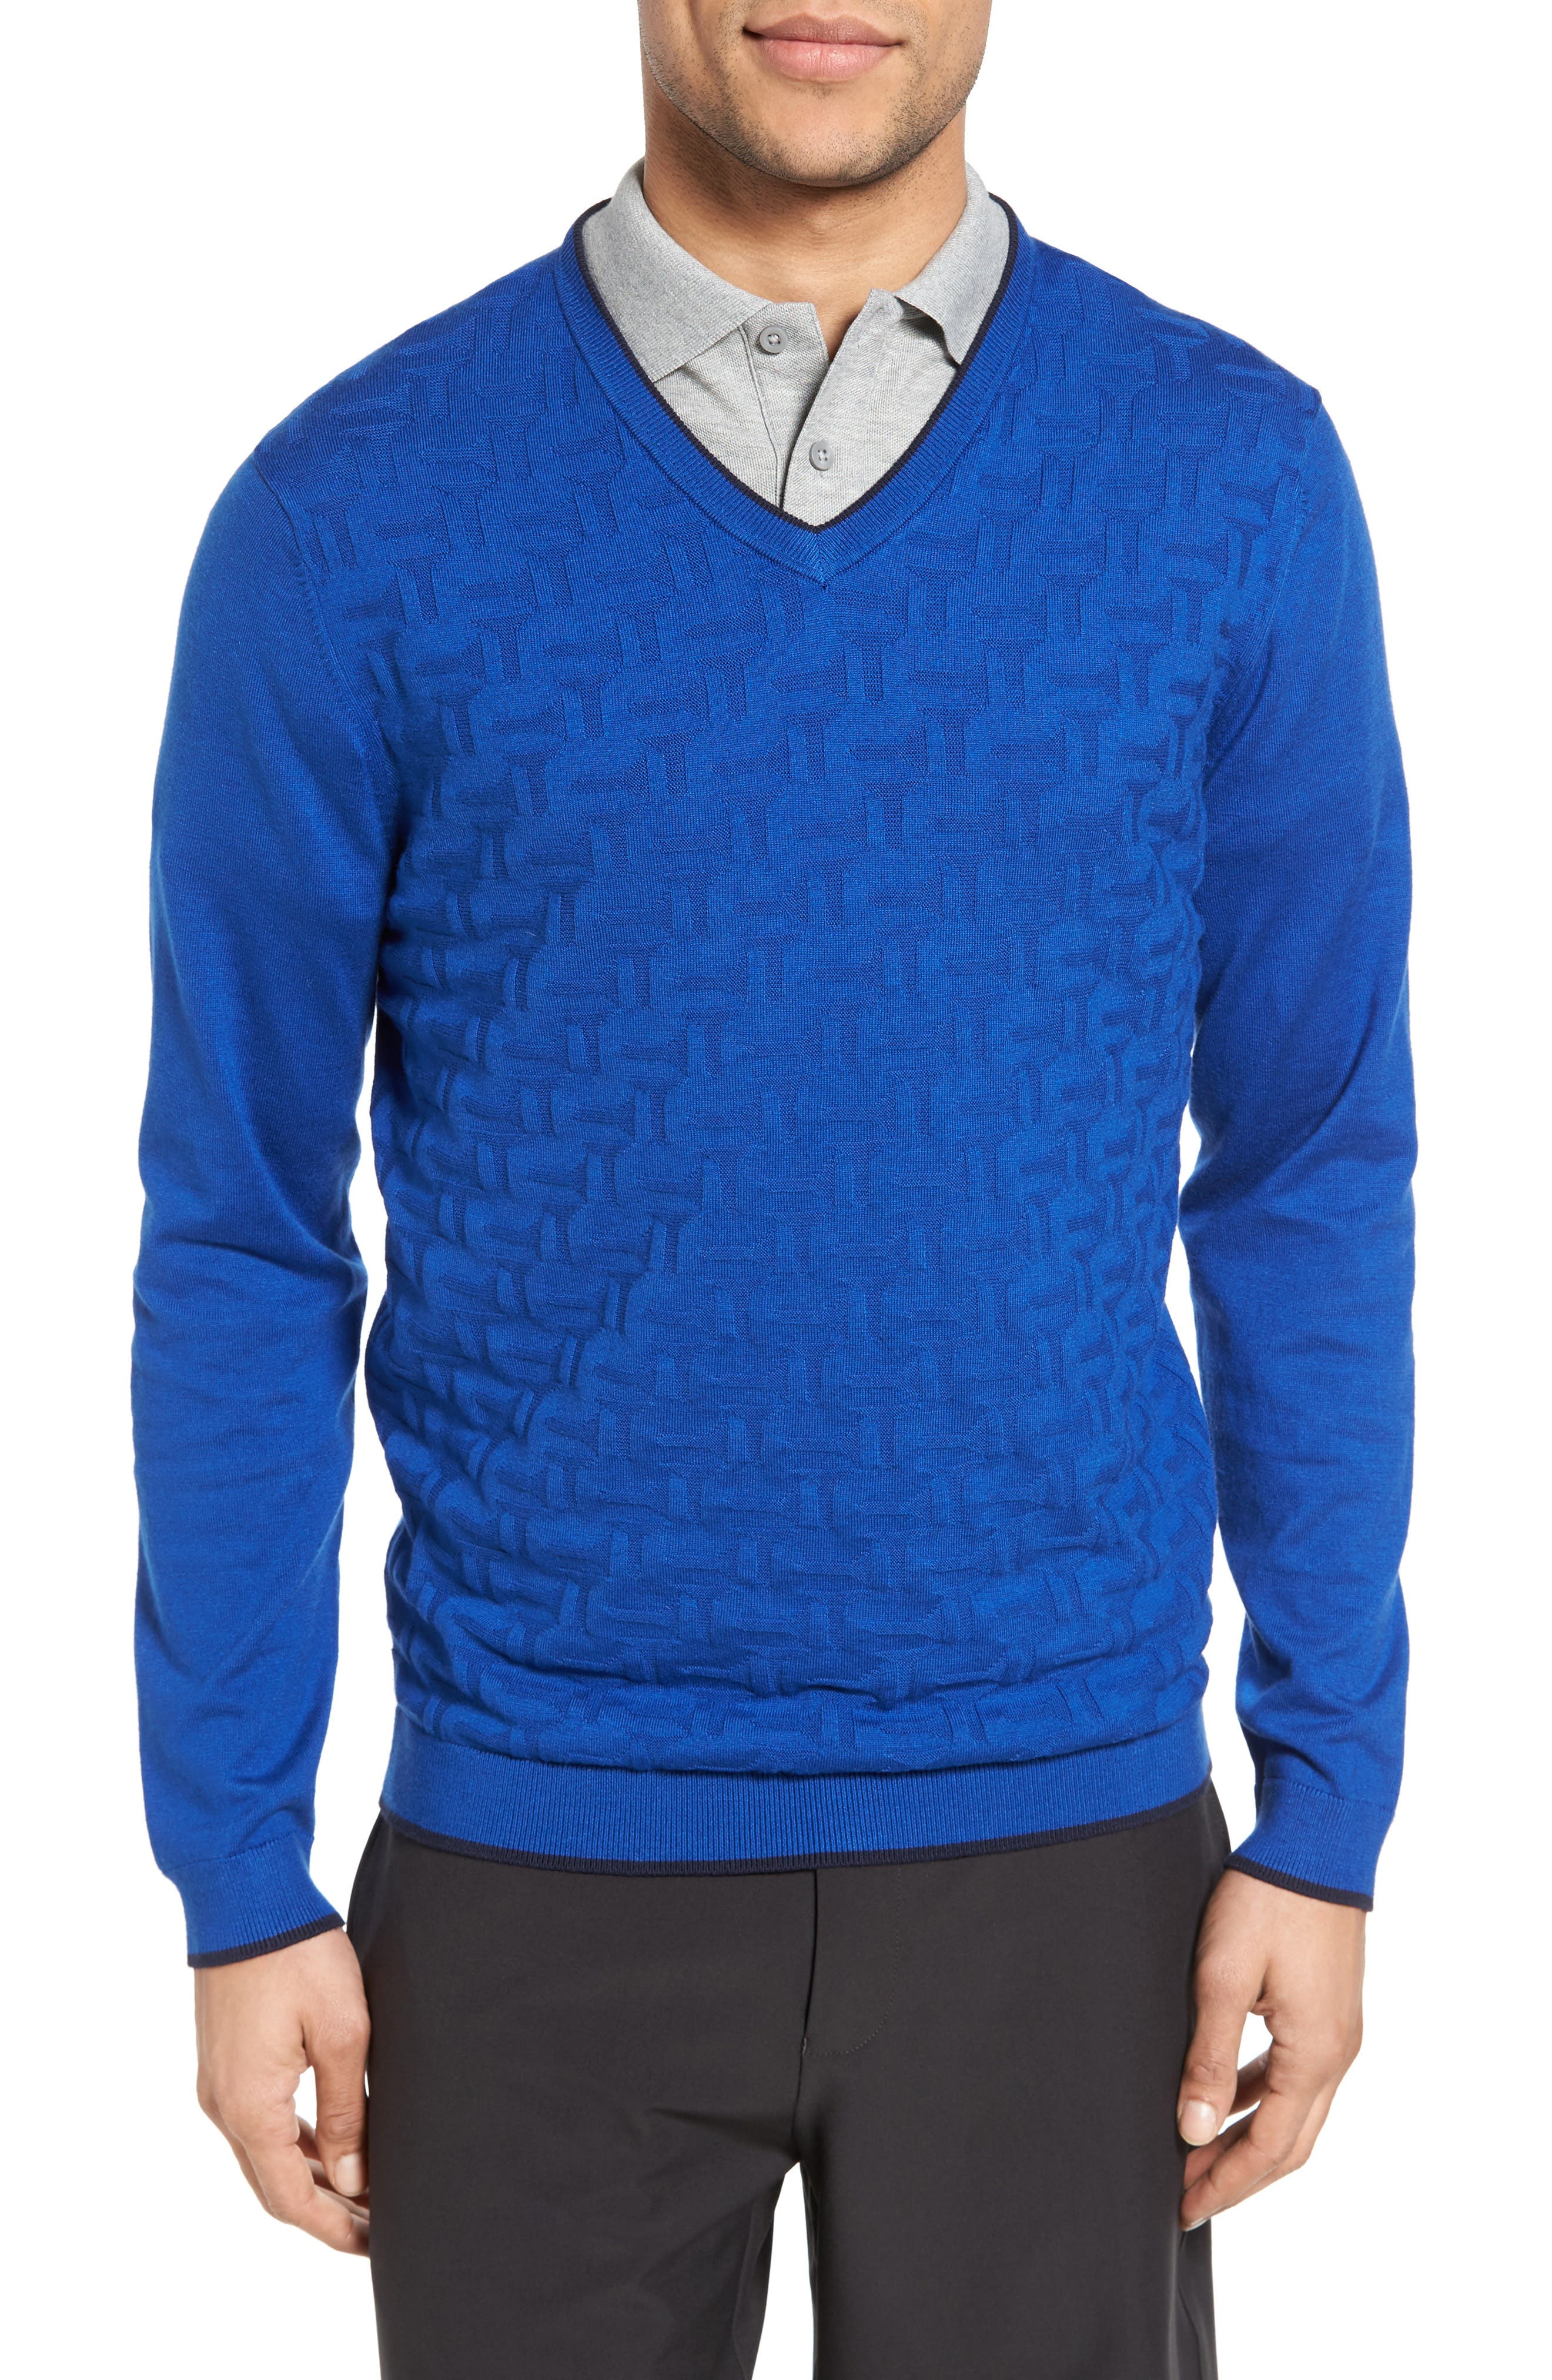 Armstro Tipped Golf Tee Sweater,                             Main thumbnail 1, color,                             Blue